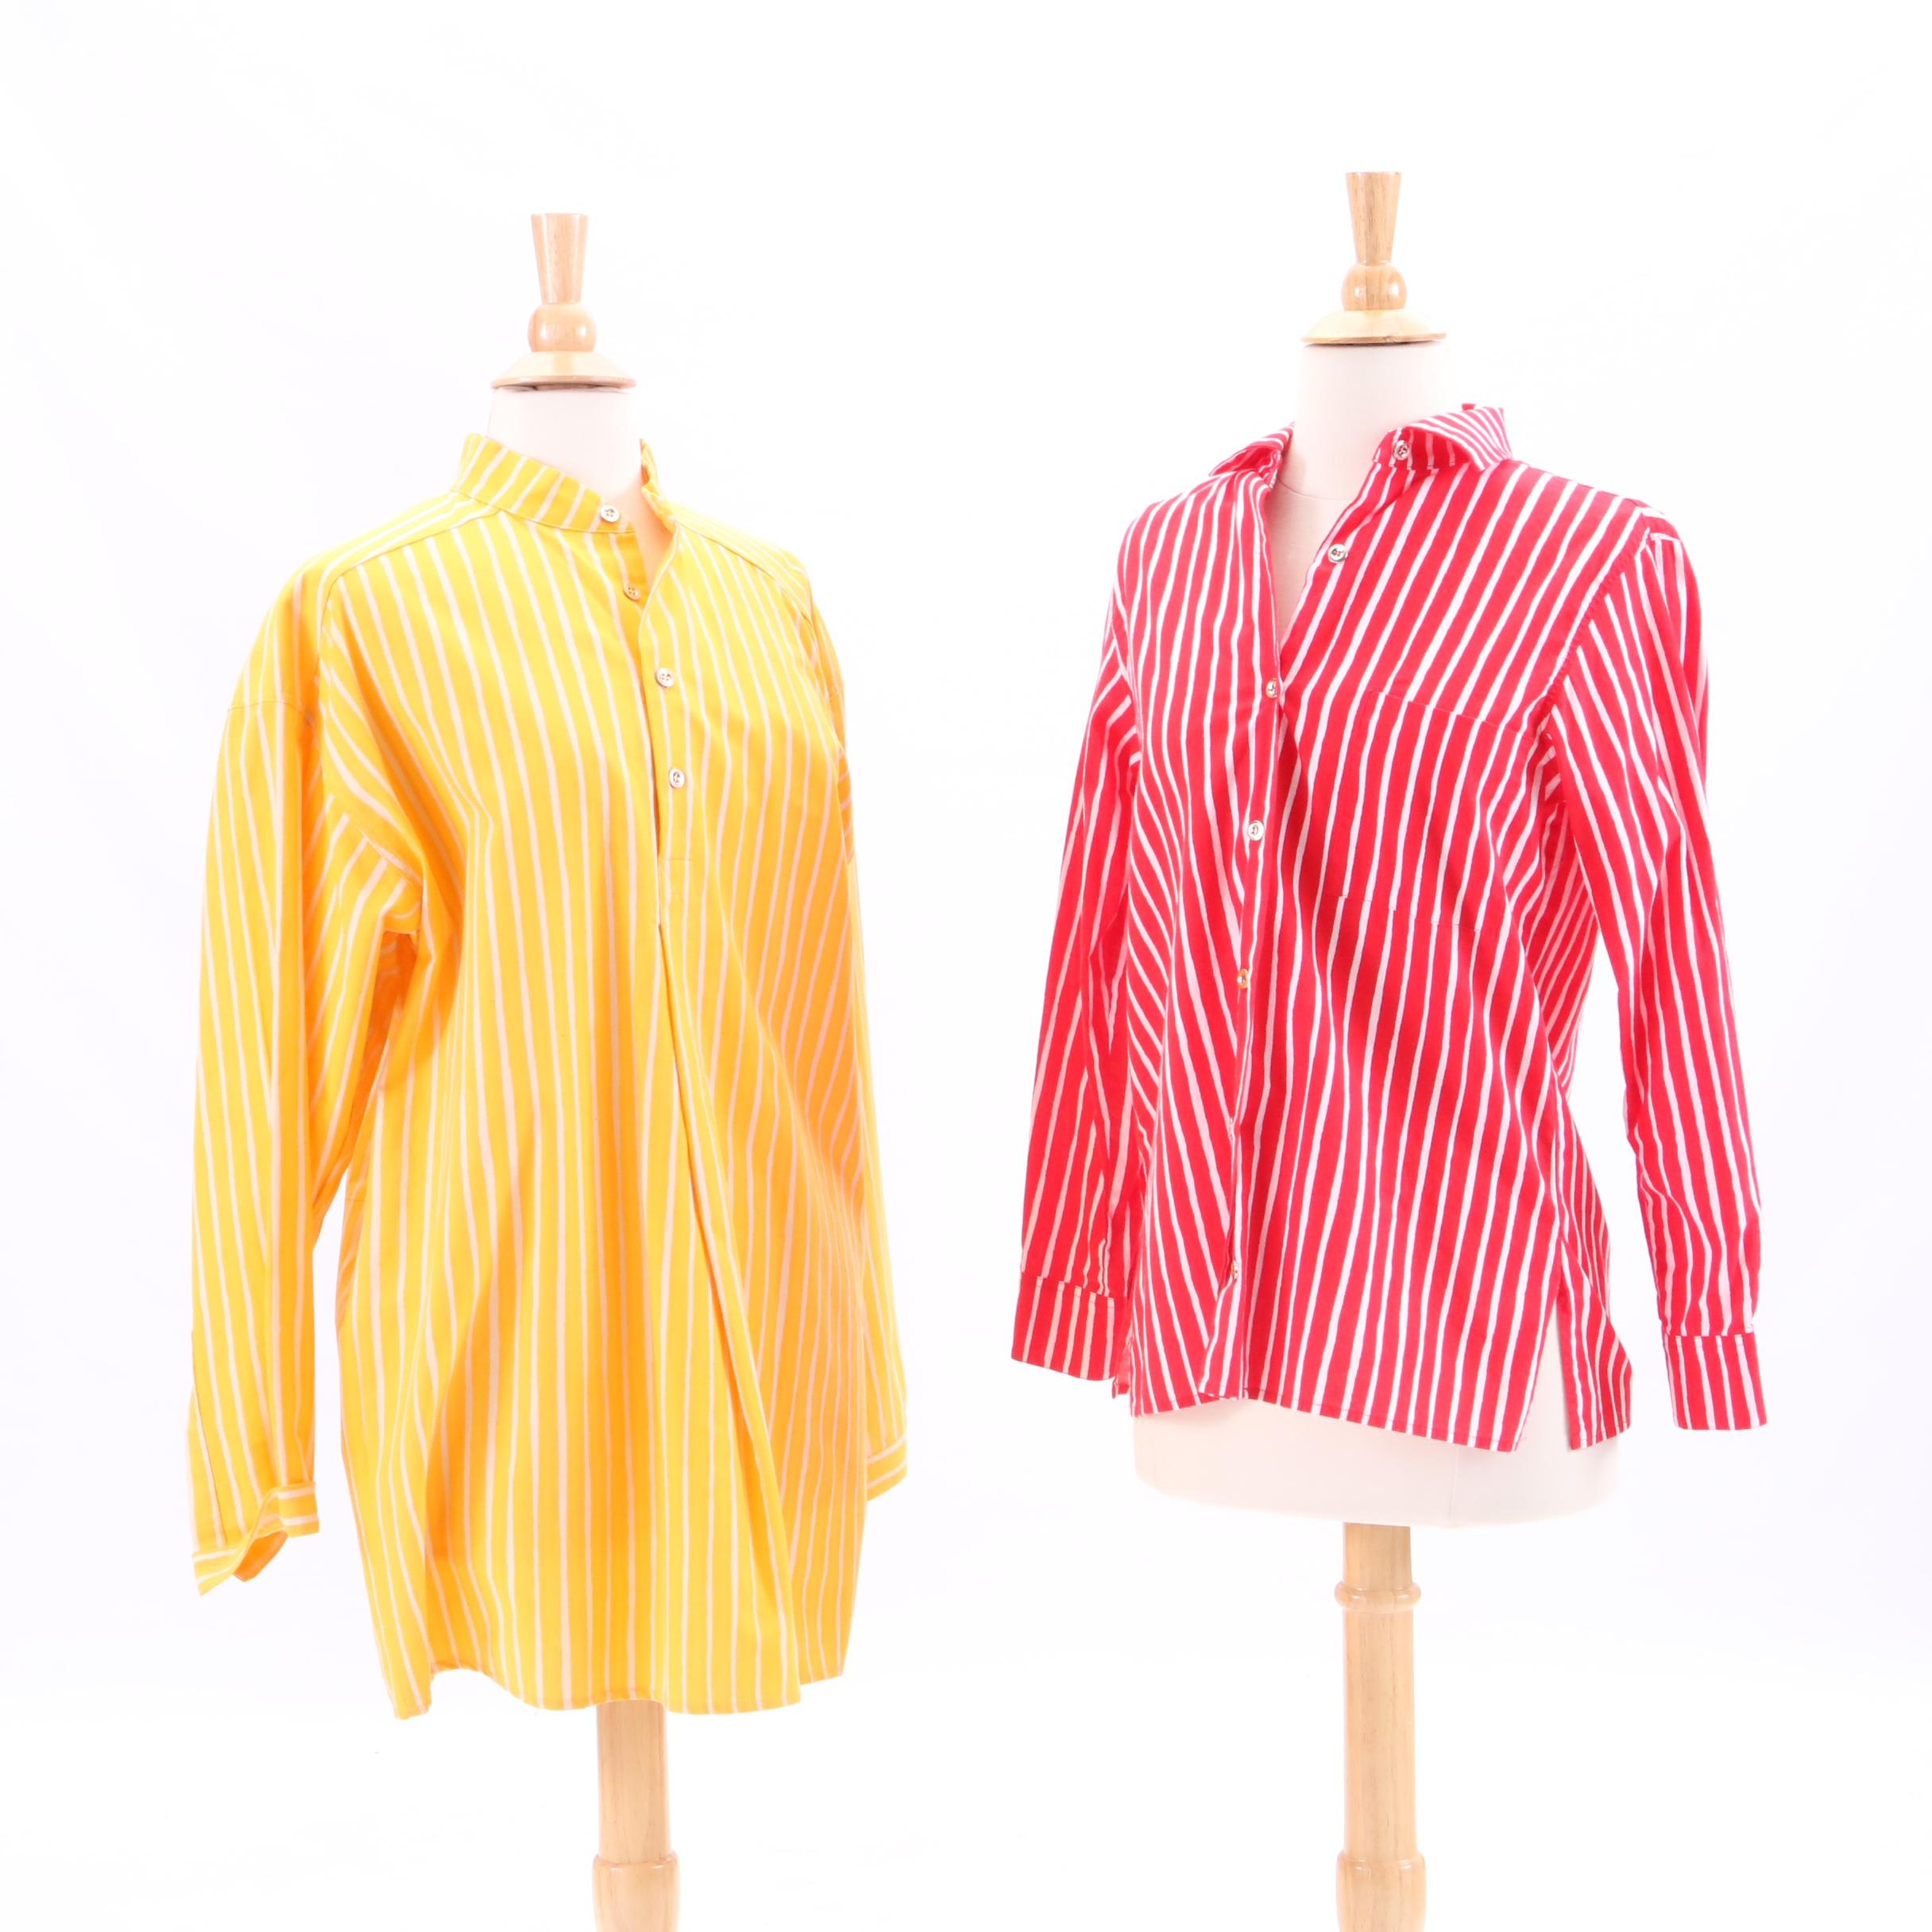 Circa 1990s Marimekko Striped Long Sleeve Shirts